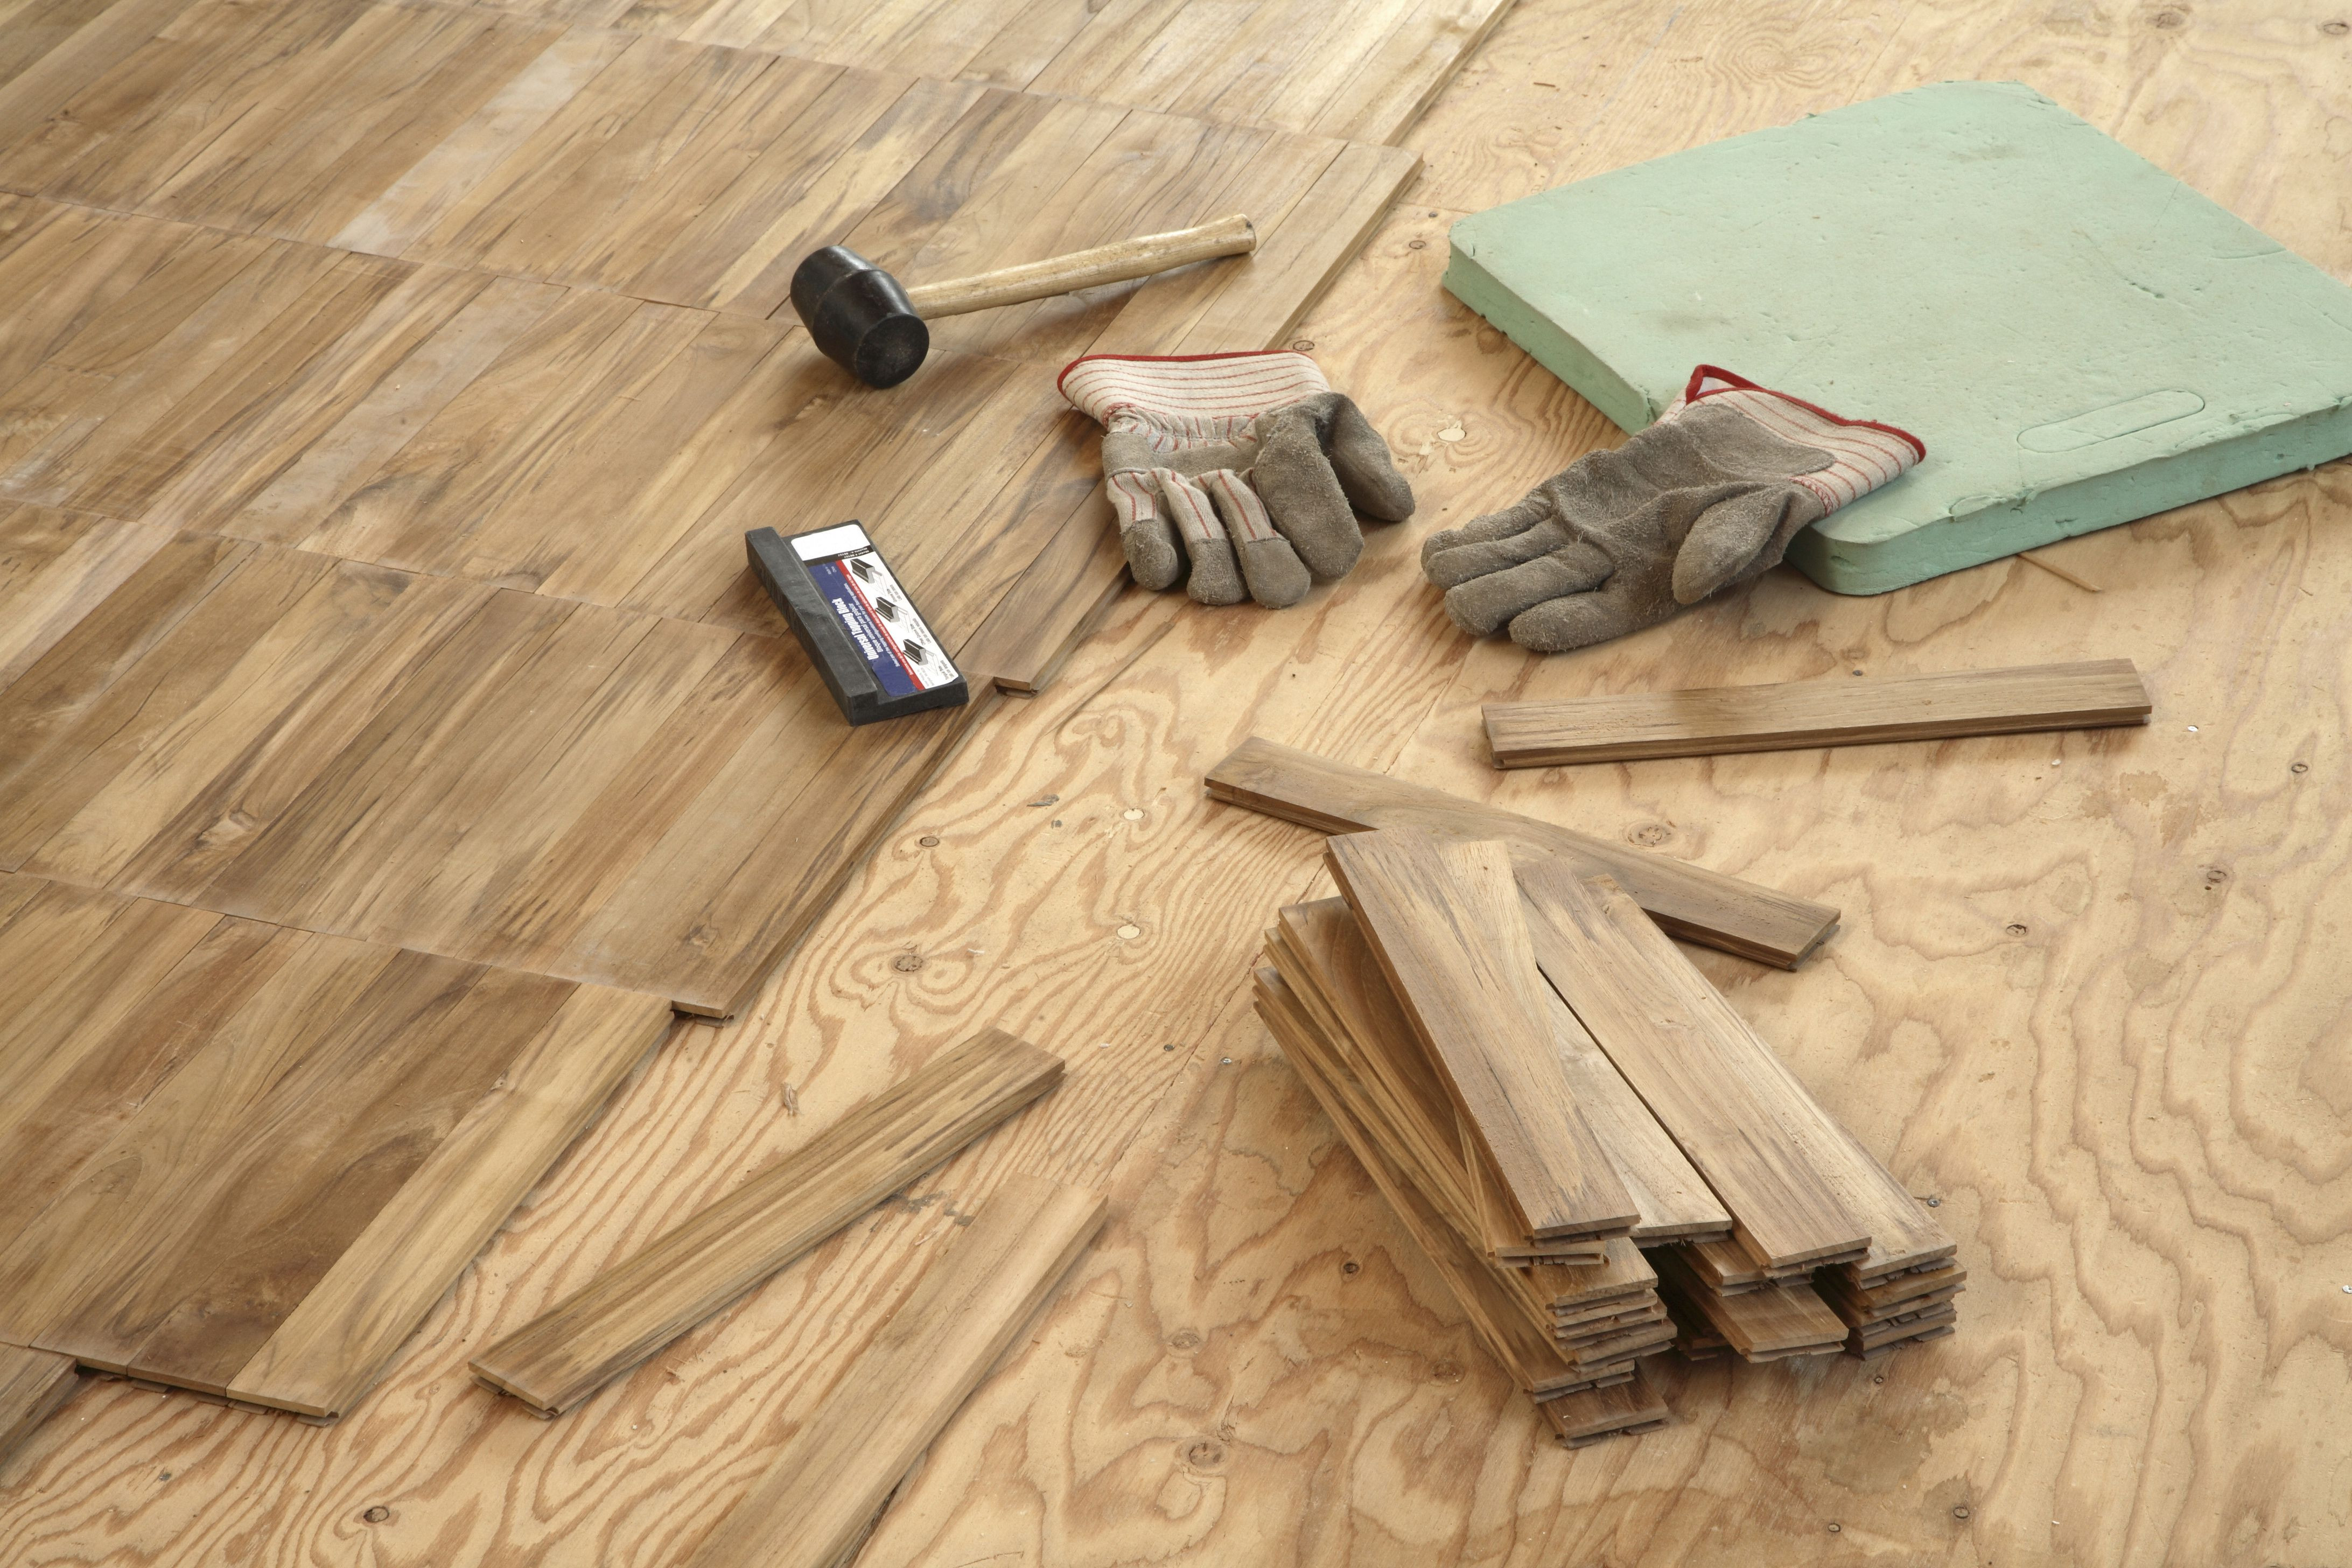 timberclick hardwood flooring reviews of plywood underlayment pros and cons types and brands with plywoodunderlaymentunderwoodflooring 5ac24fbcae9ab8003781af25